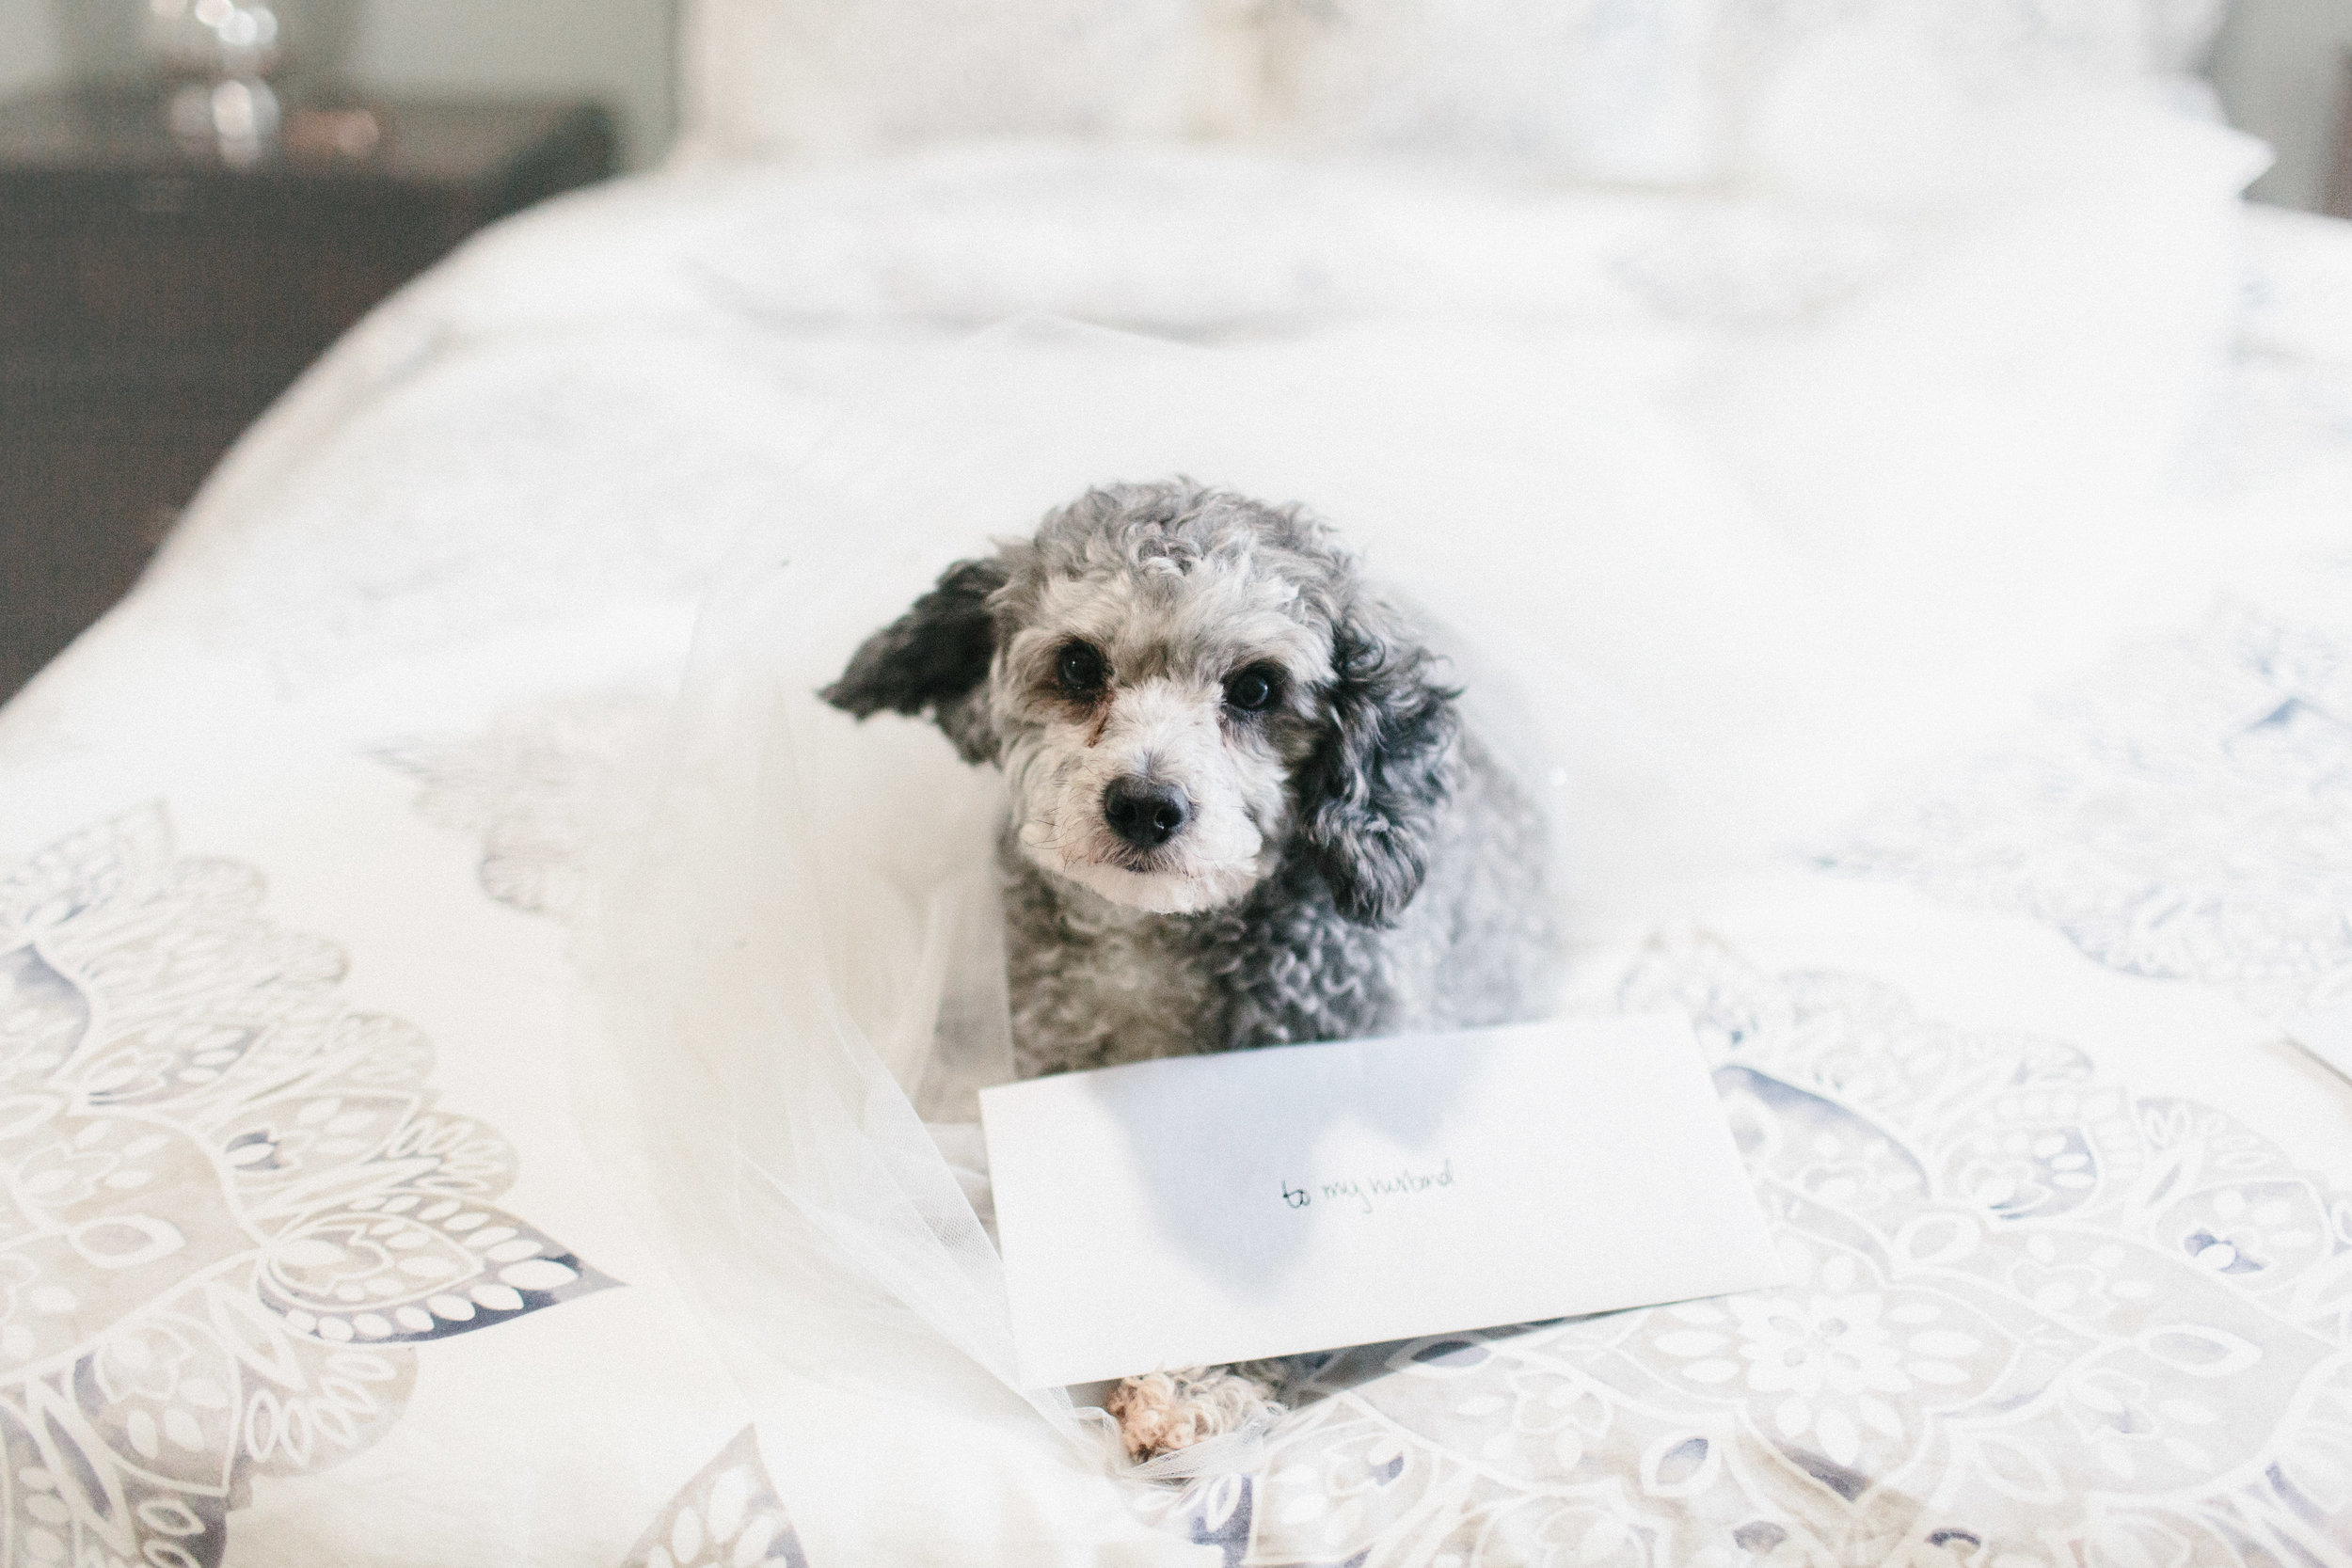 newnan_georgia_elegant_rainy_park_elopement_dogs_pups_tiny_wedding_backless_dress_blue_suit_georgia_atlanta_photographer_1020.jpg